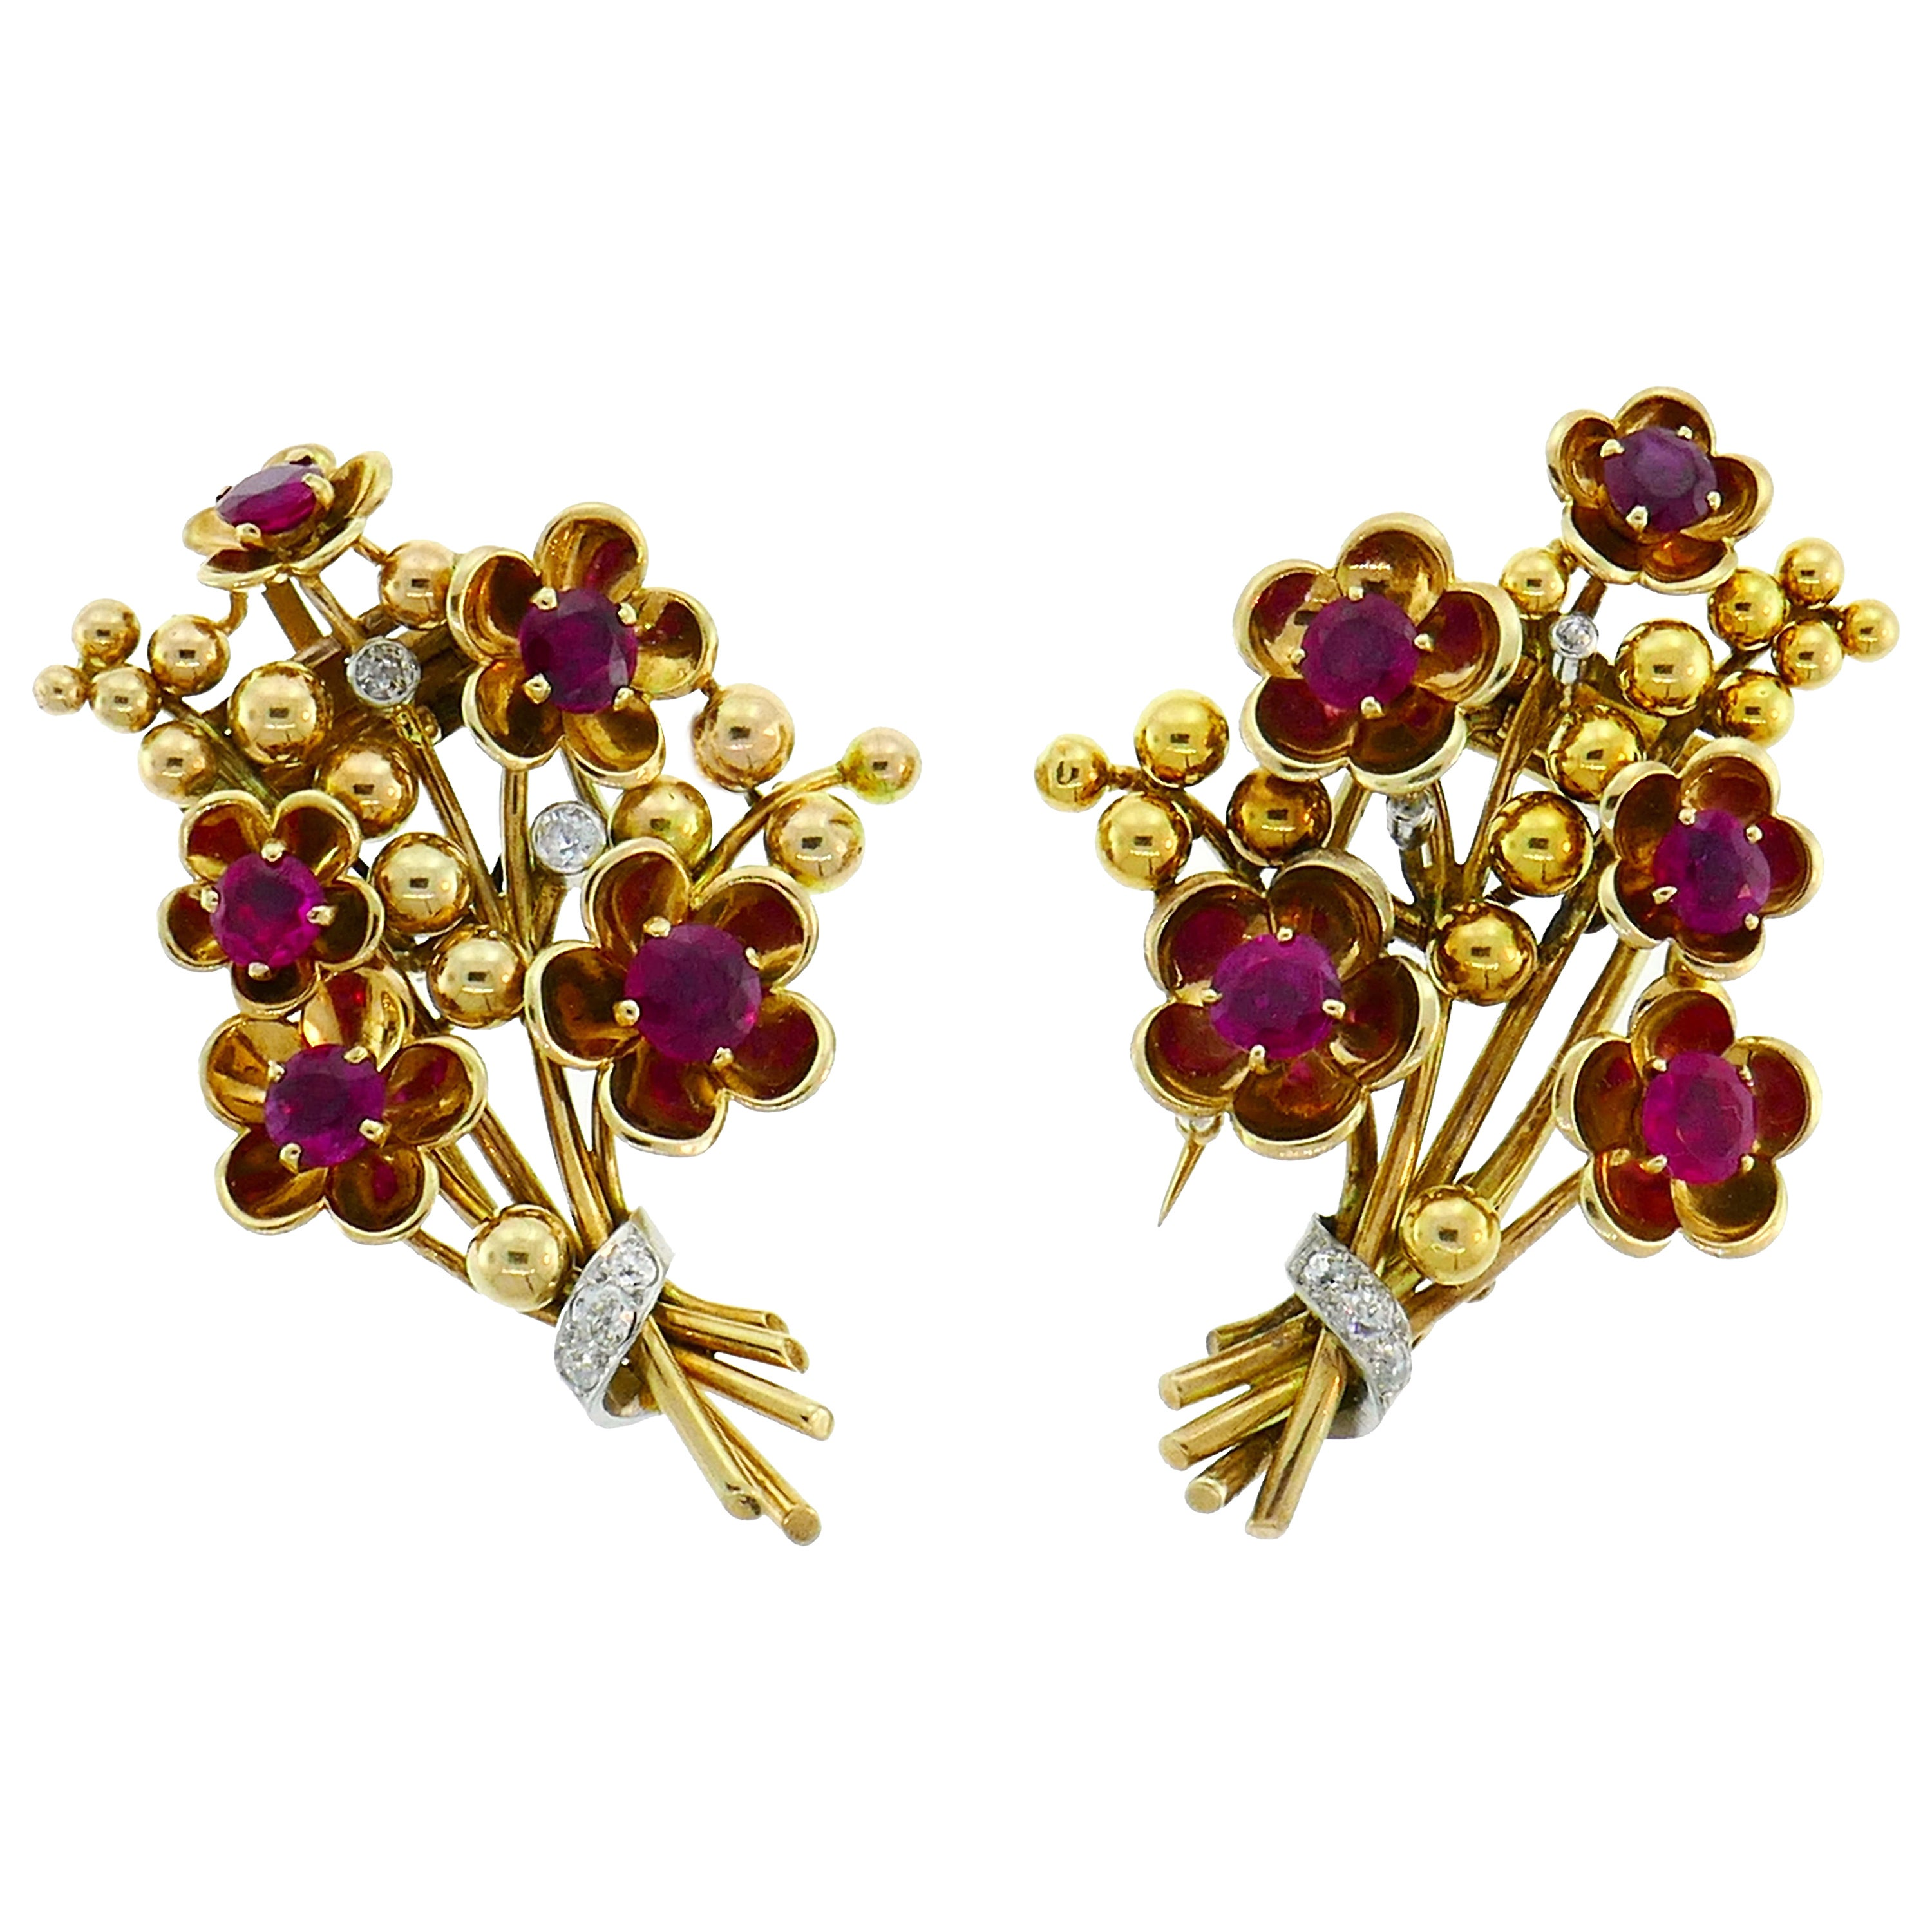 Cartier Ruby Diamond Gold Double Clip Pin Brooch, Retro 1940s Floral